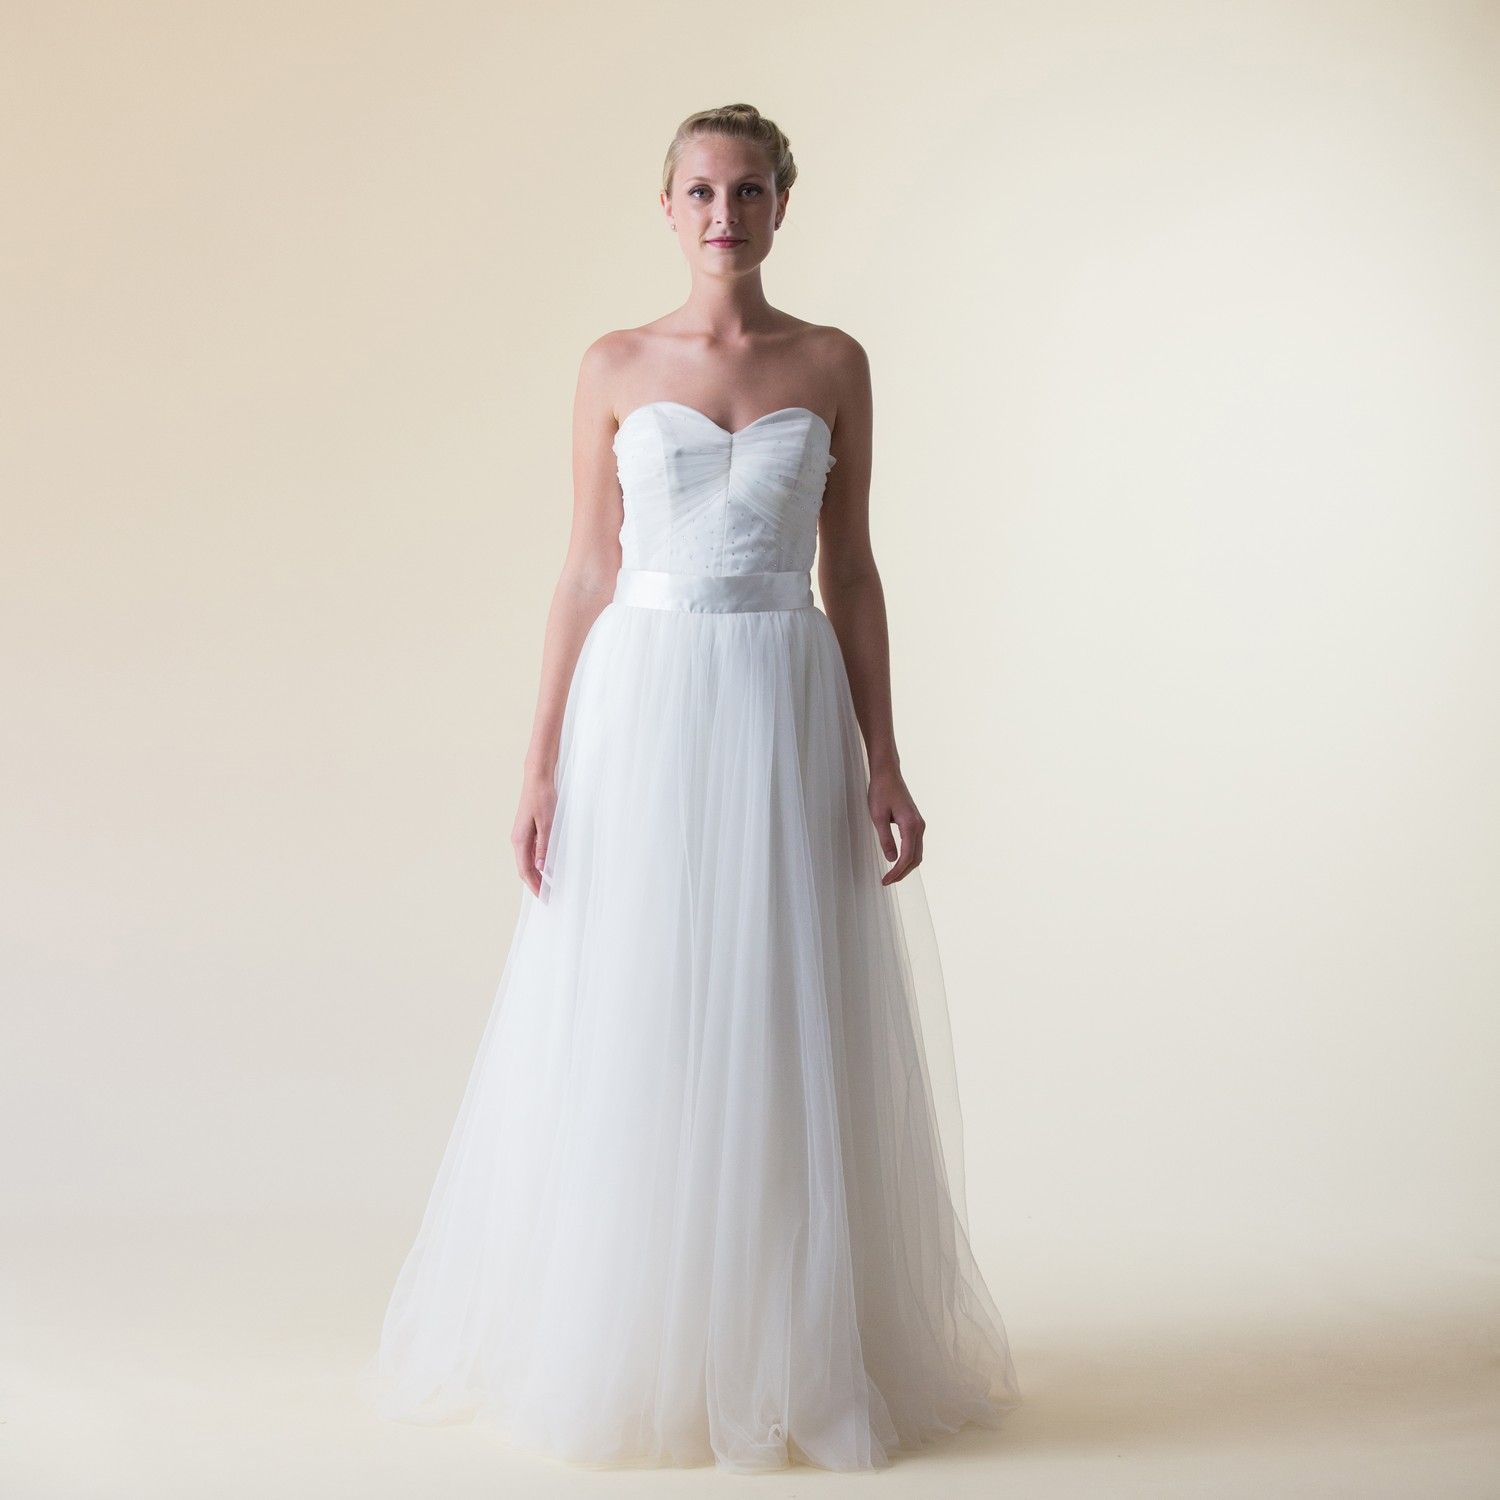 An exquisitely ethical wedding dress. The Florence | Celia Grace ...